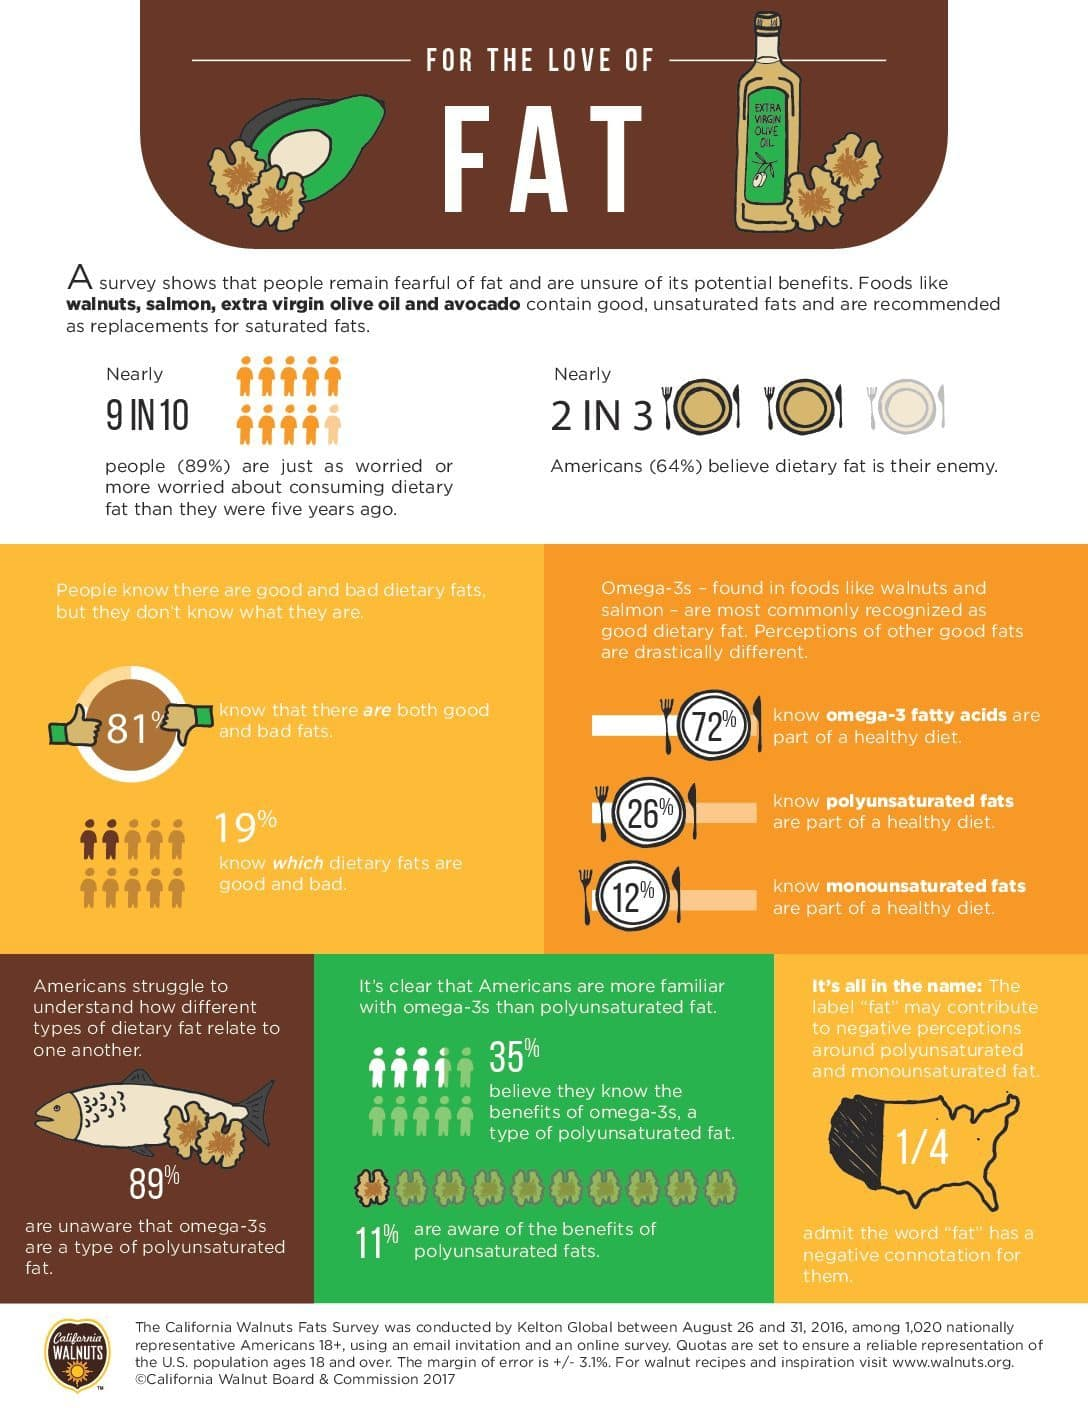 For the Love of Fat Infographic